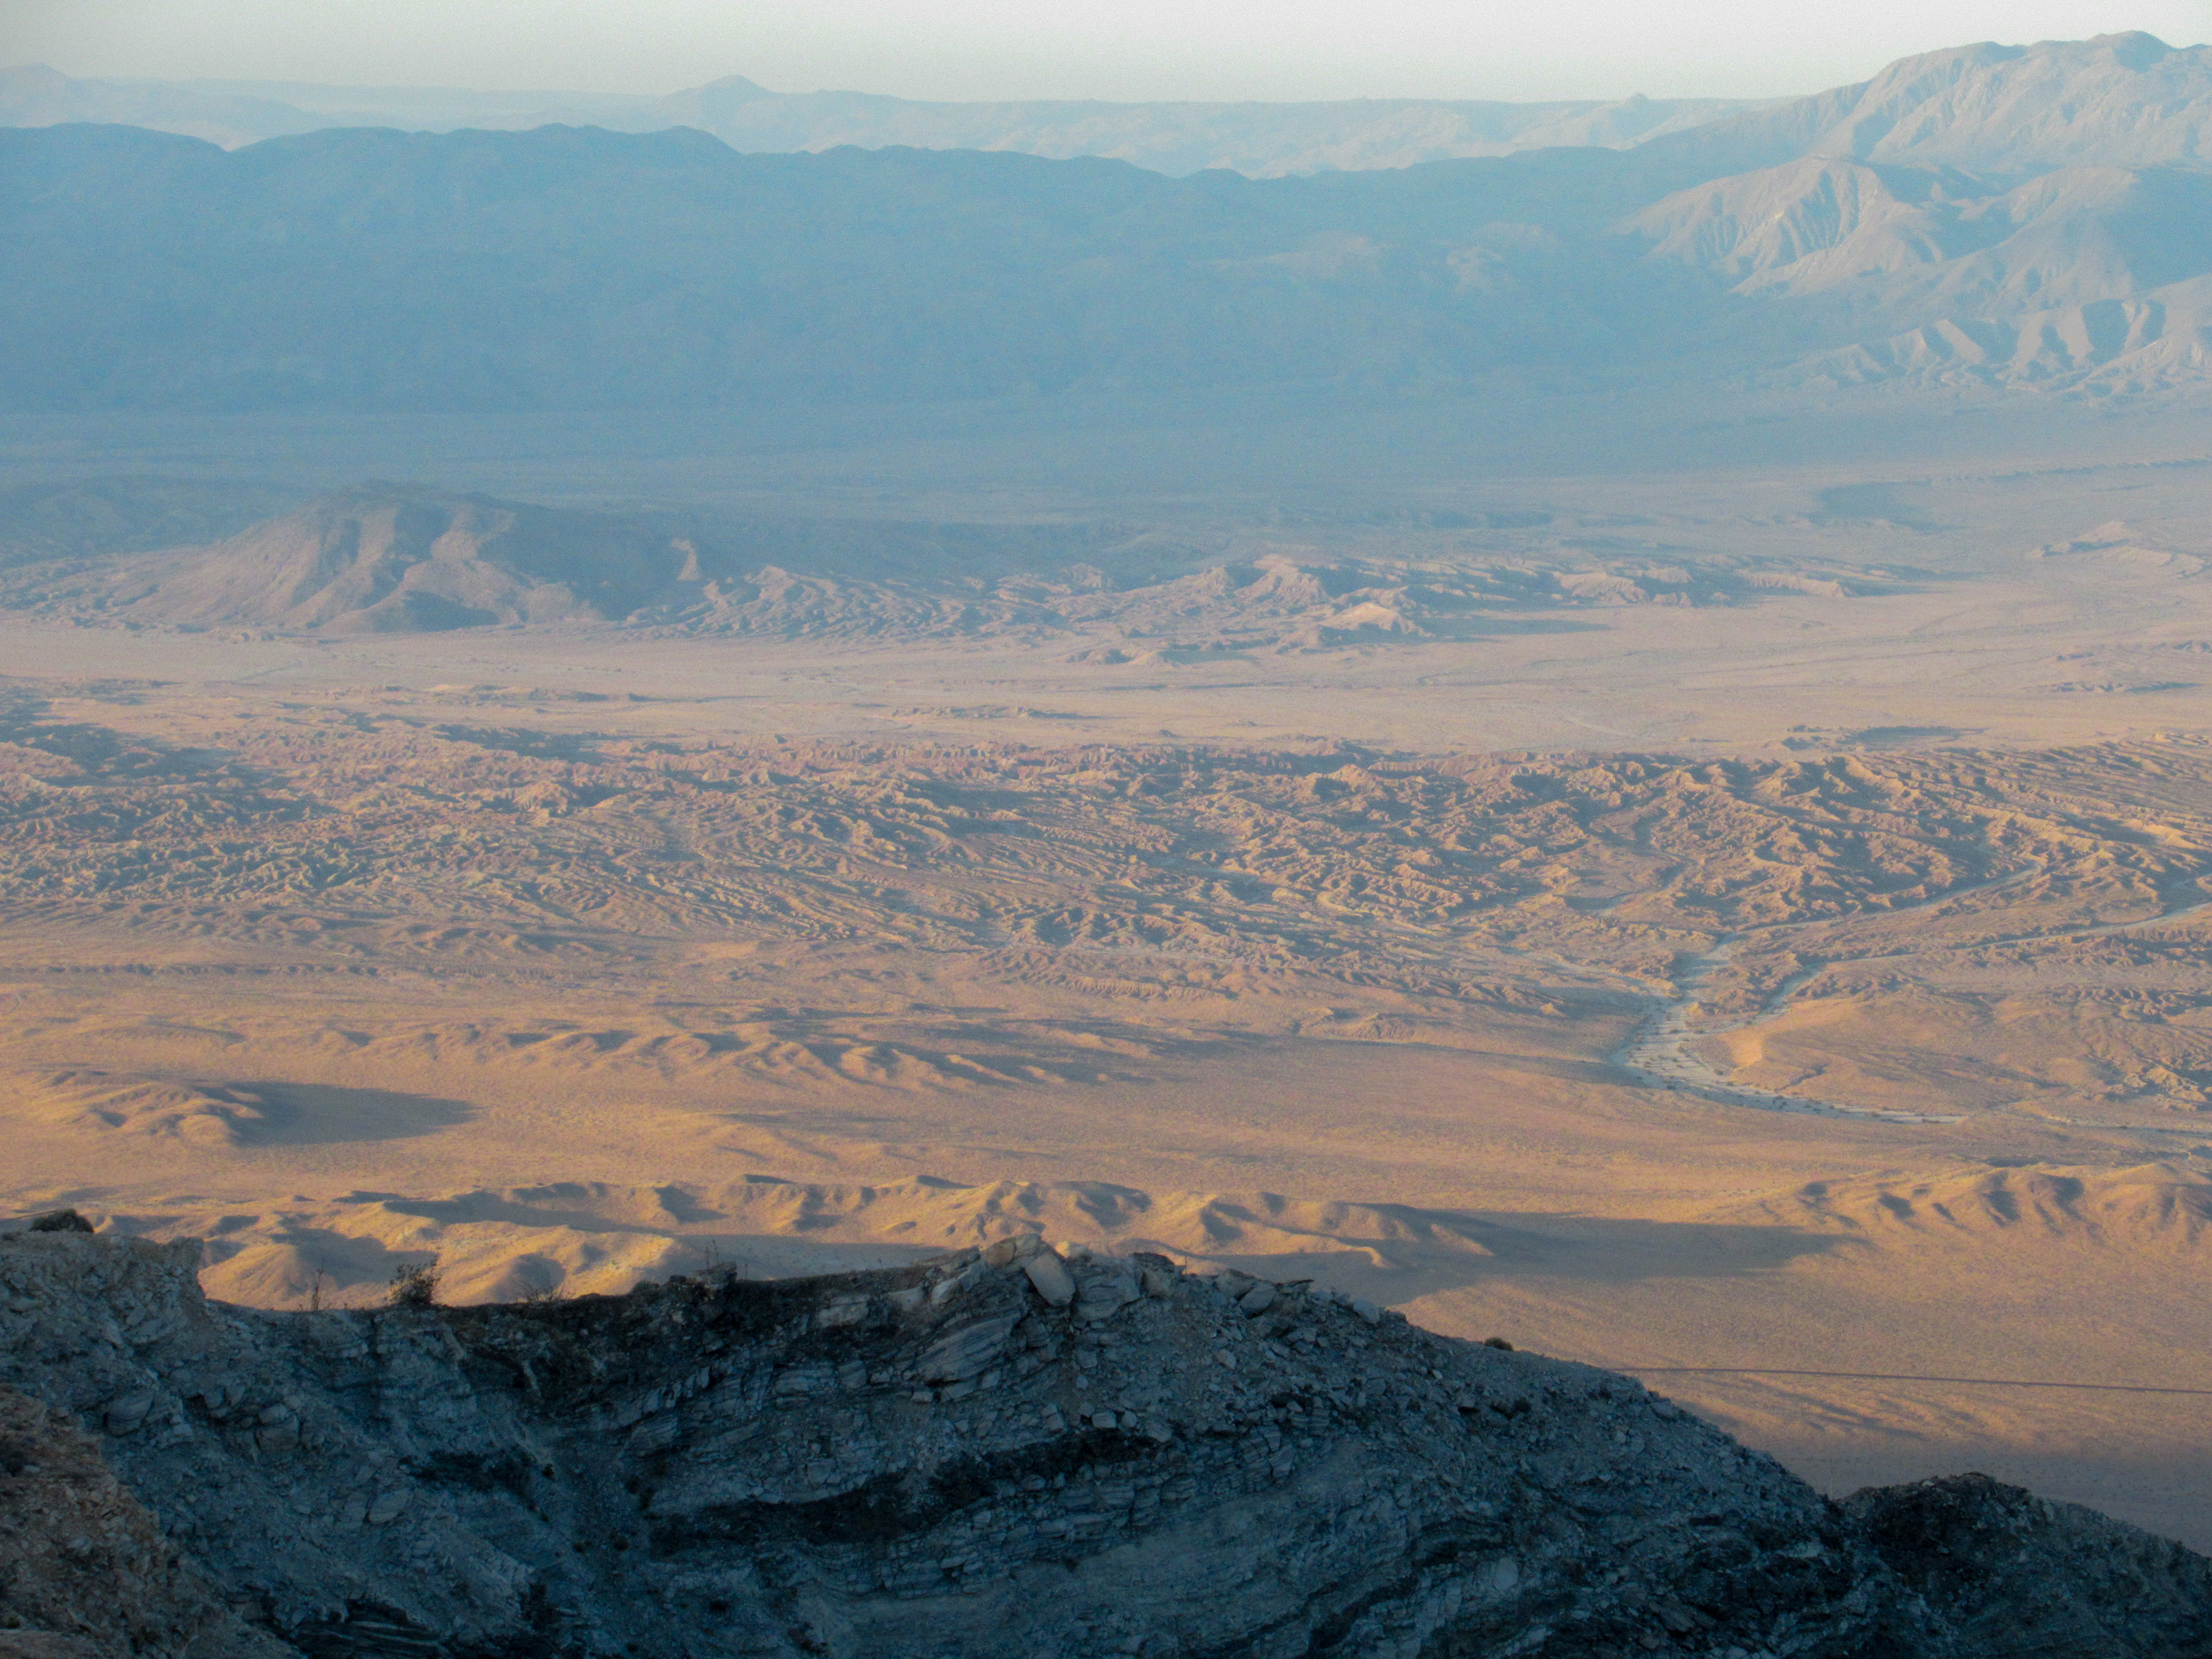 Sunrise illuminates the Borrego badlands.